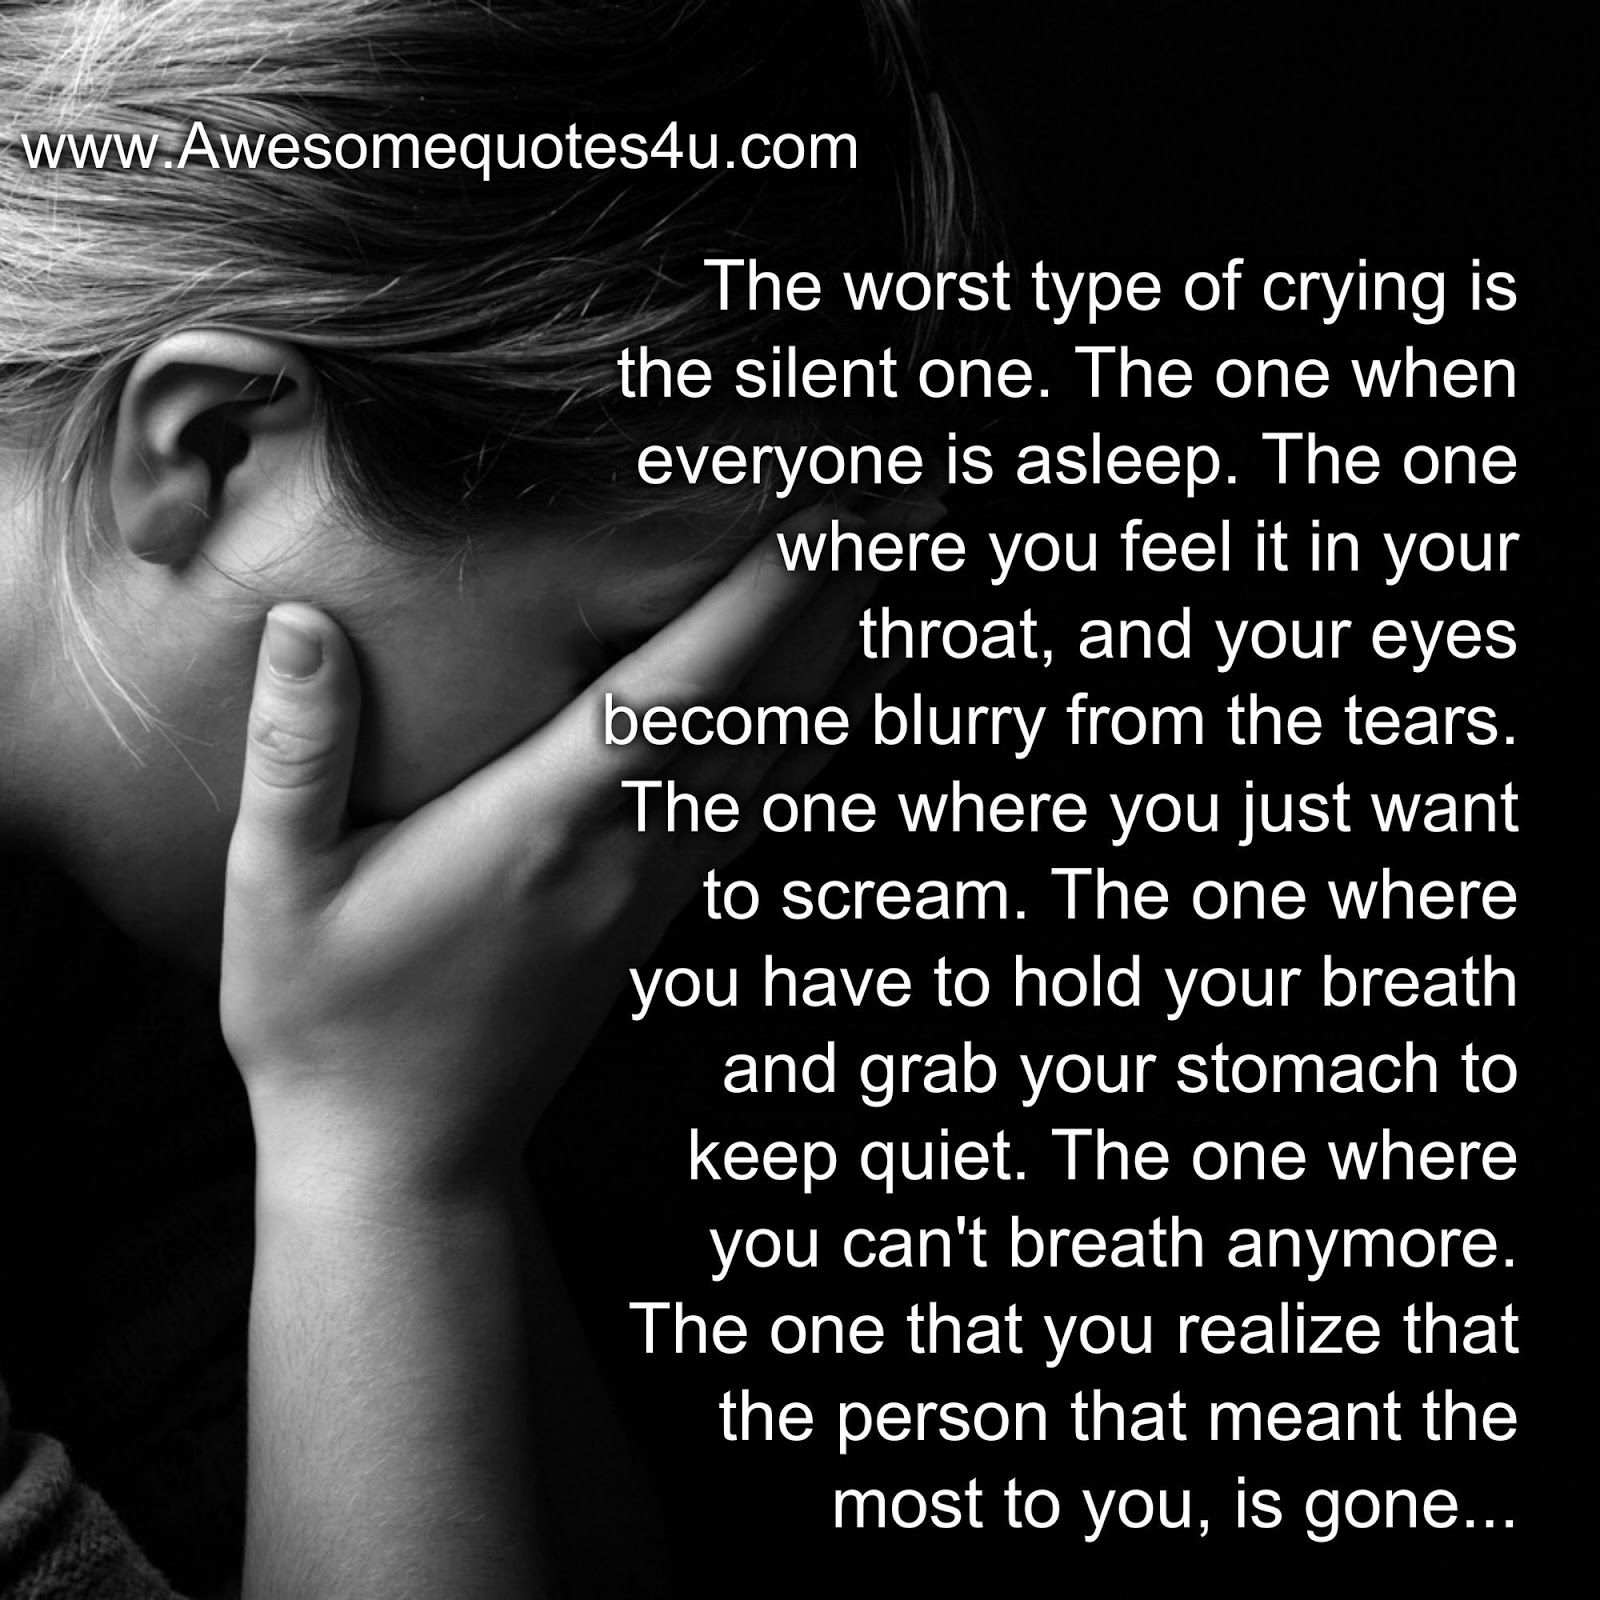 Awesome Quotes The Worst Type Of Crying Is The Silent One Life